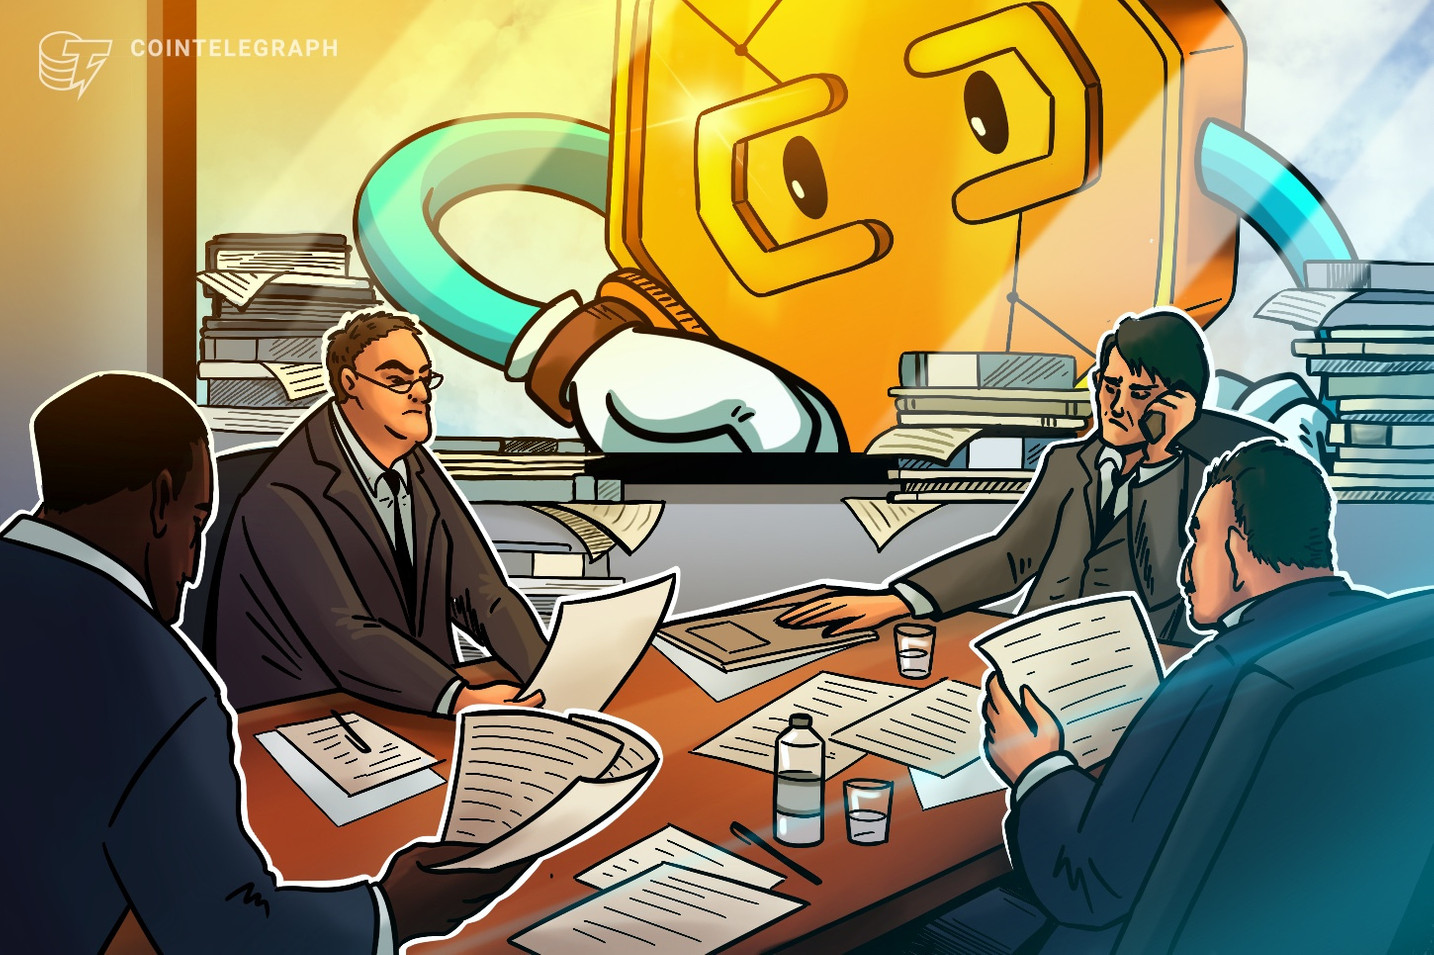 JPMorgan Chase execs weigh in on stablecoin regulation, crypto competition